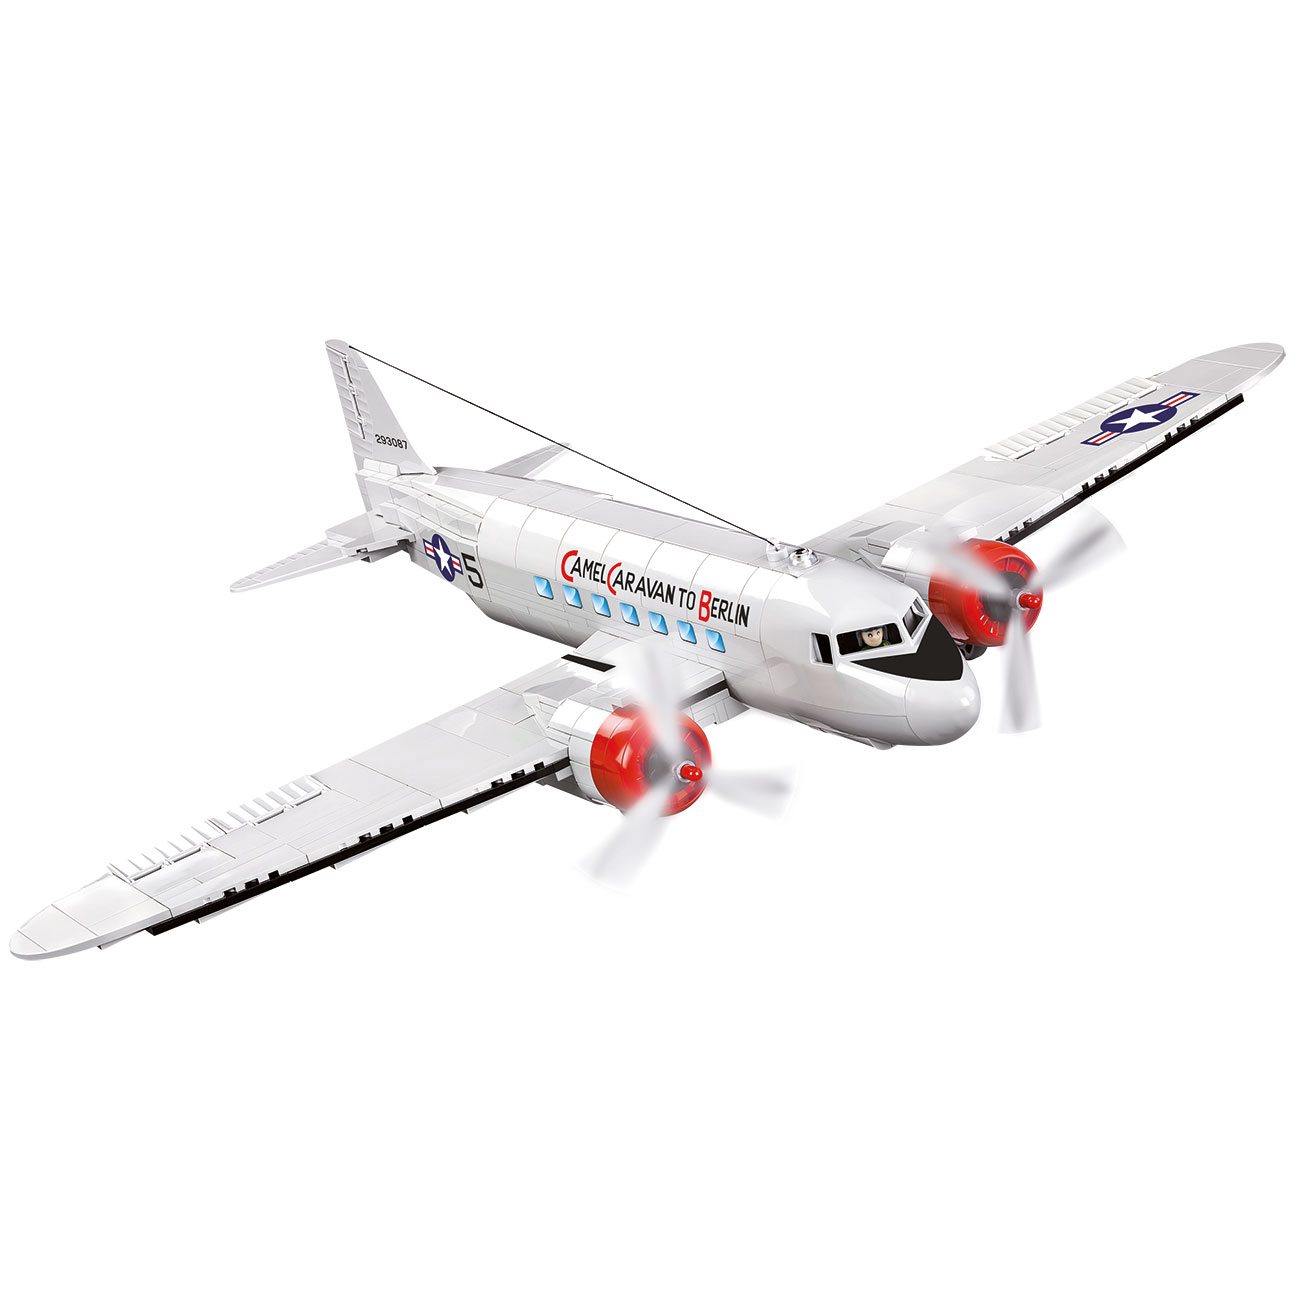 Cobi Historical Collection Bausatz Flugzeug C-47 Skytrain - Berlin Airlift 540 Teile 5702 1